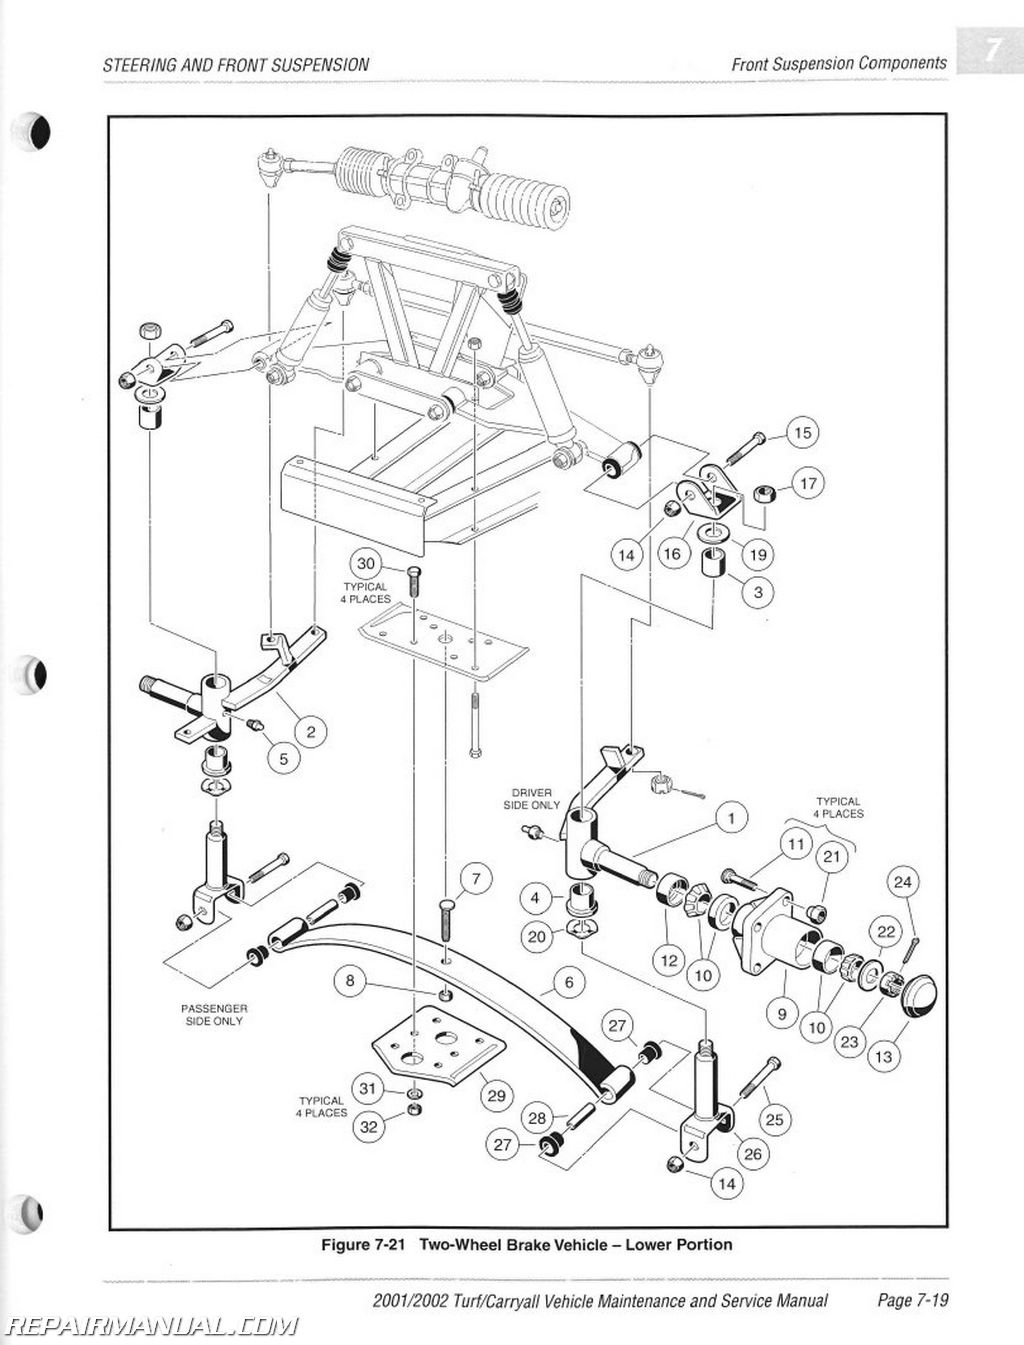 hight resolution of club car carryall parts diagram wiring diagram m6 club car carryall 6 parts diagram carryall 2